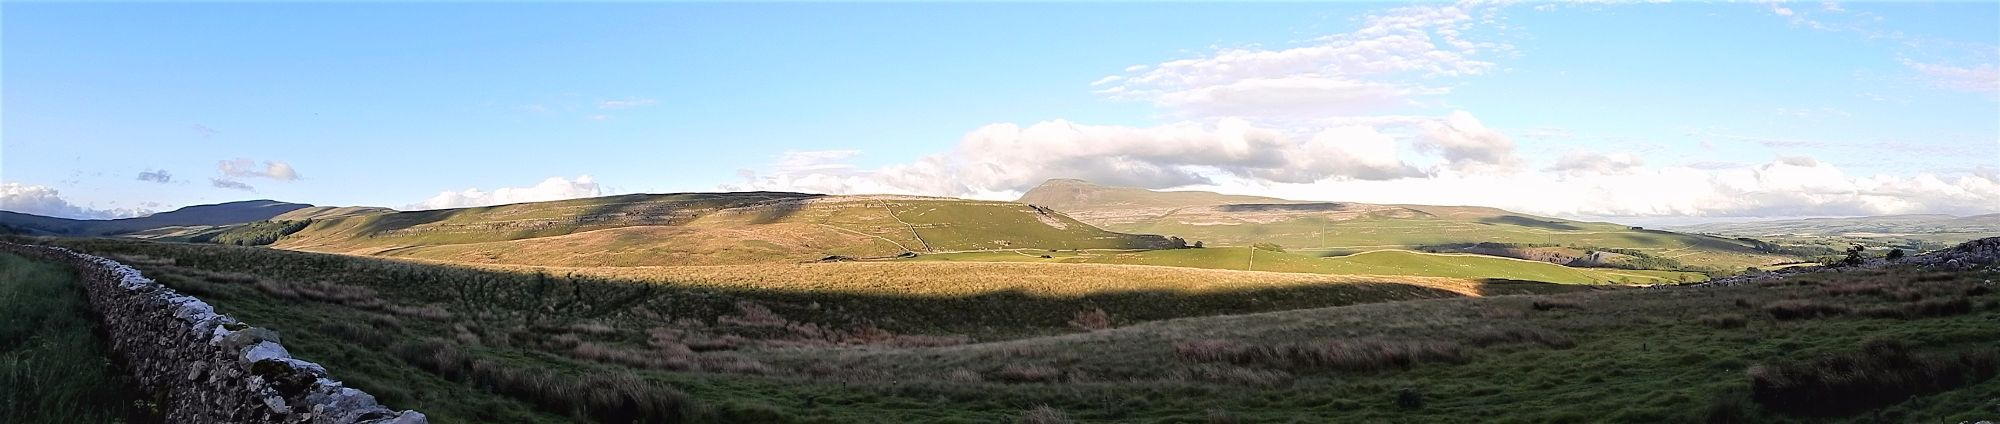 View towards Twistleton Scar and Ingleborough viewed from Kingsdale